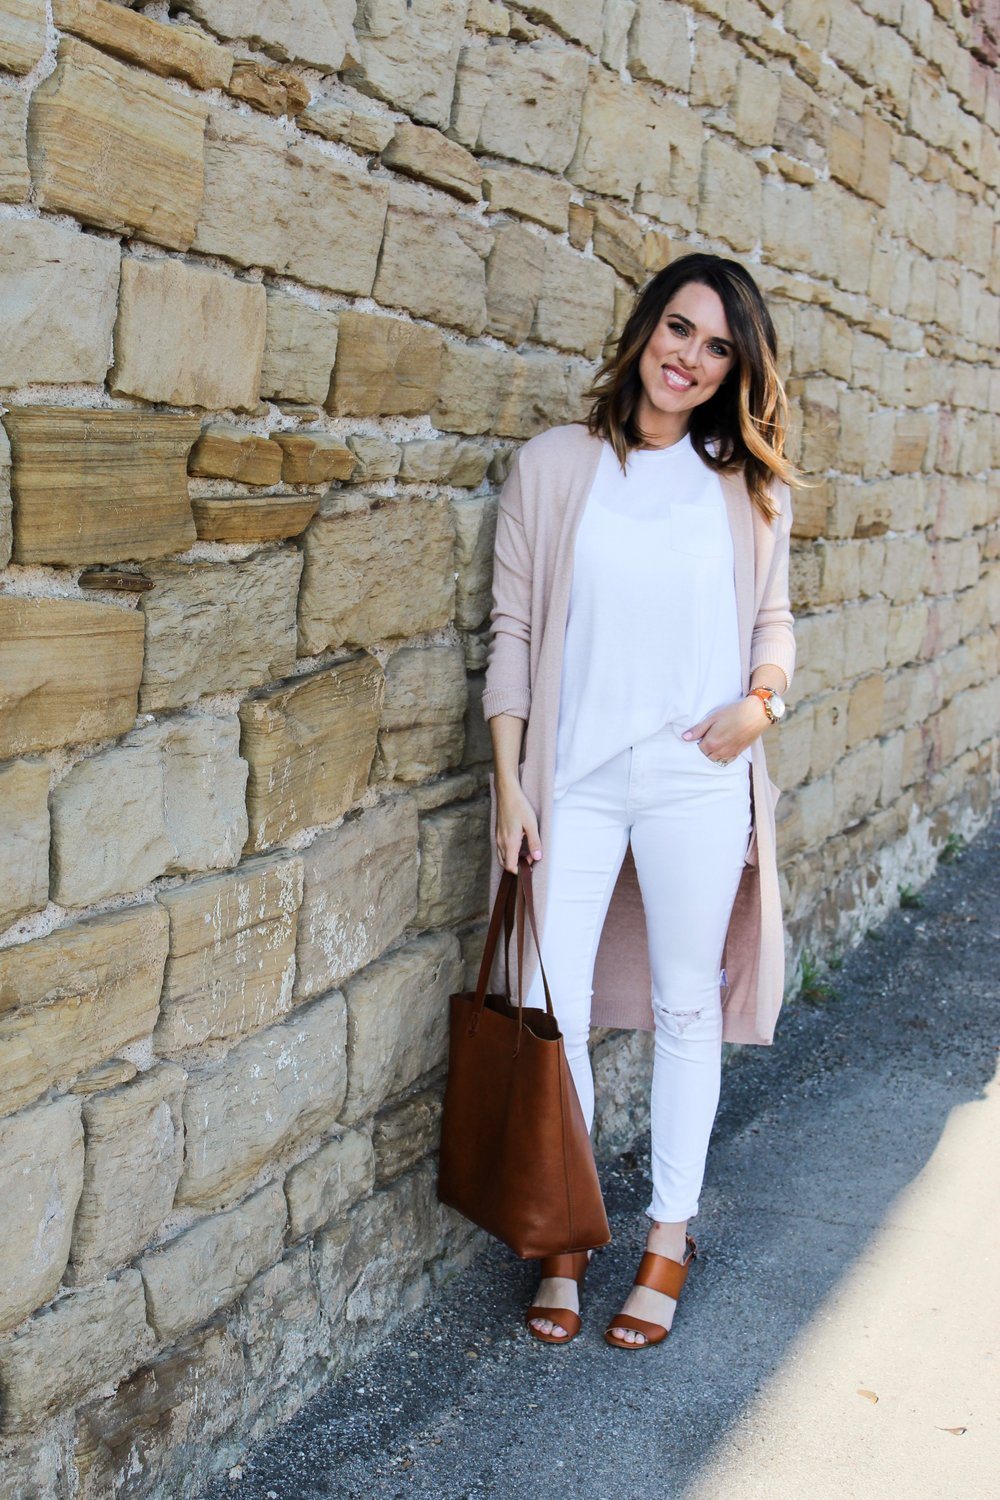 Cotton Stem Blog capsule wardrobe leather tote pink and white outfit.jpg